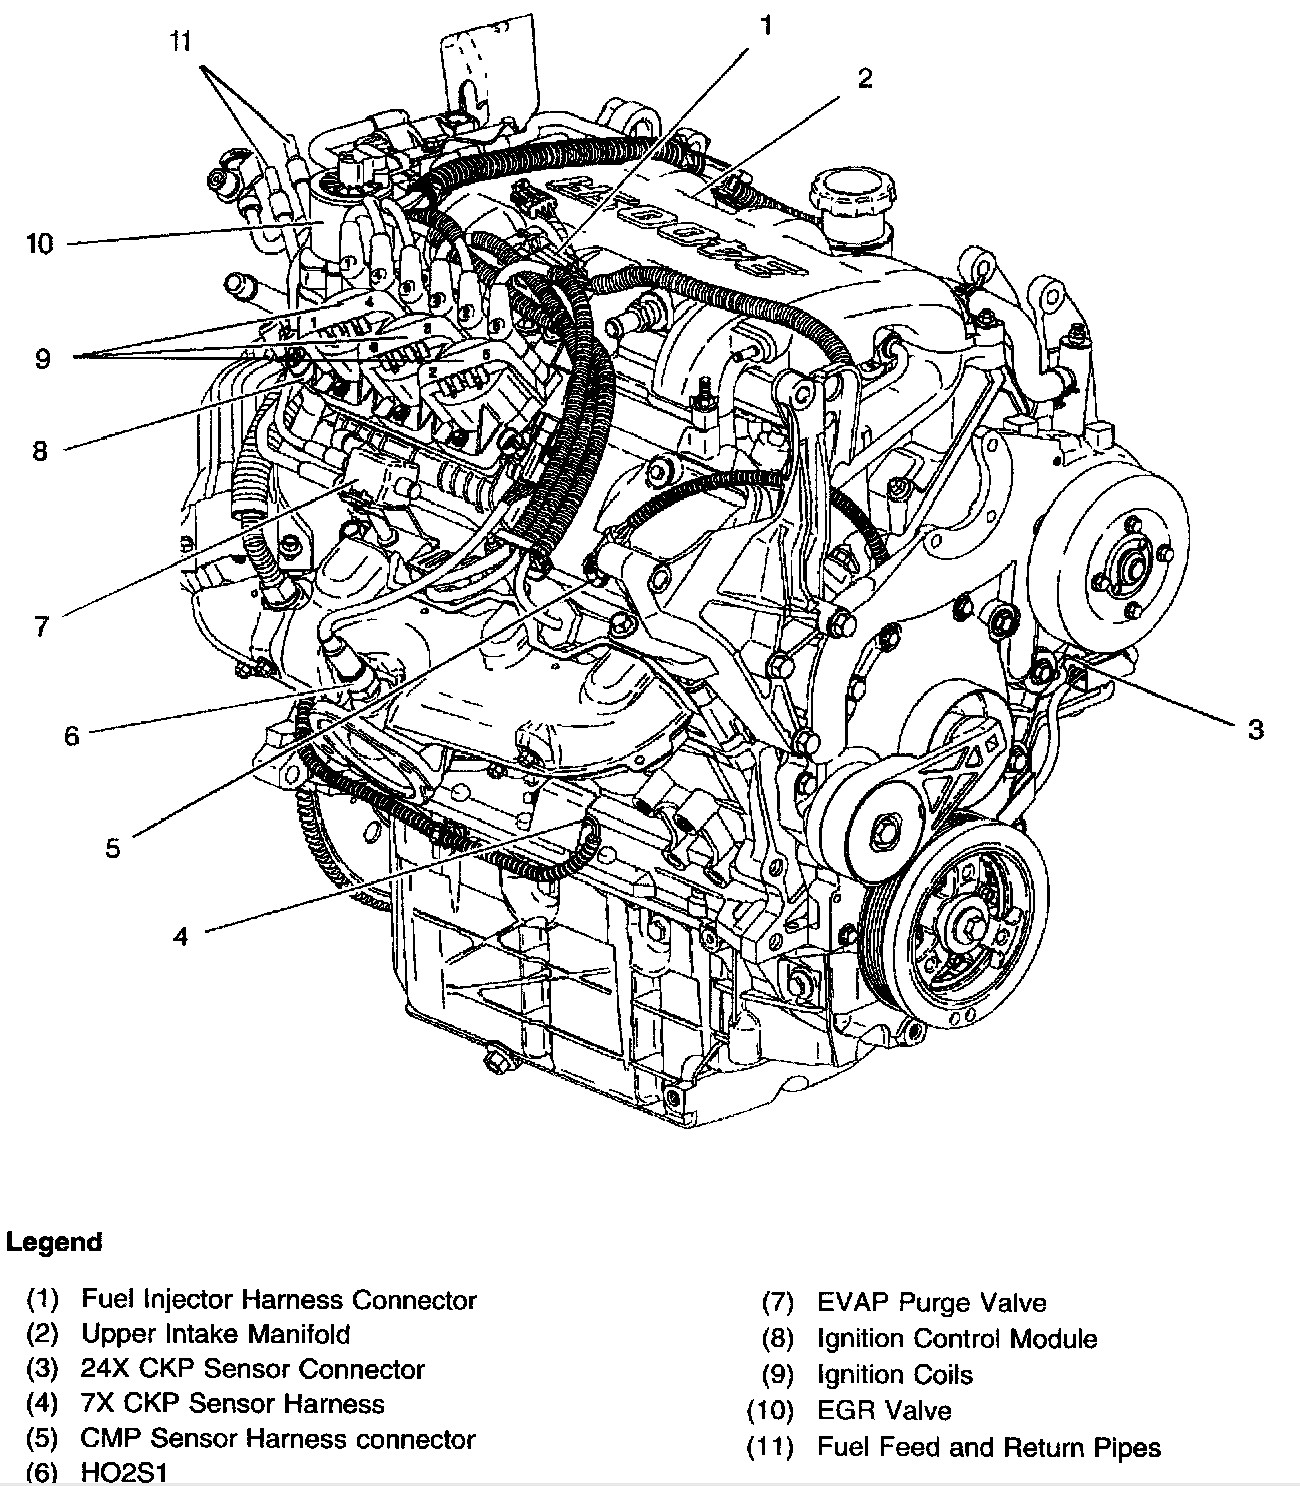 Hvac also How To Enable Or Disable Ford Daytime Running Lights Within Ford F Parts Diagram as well Chevy Engine Parts Diagram Gm Ignition Wiring Diagram Gm Wiring Diagrams Instructions Of Chevy Engine Parts Diagram as well  on diagram domecargo to